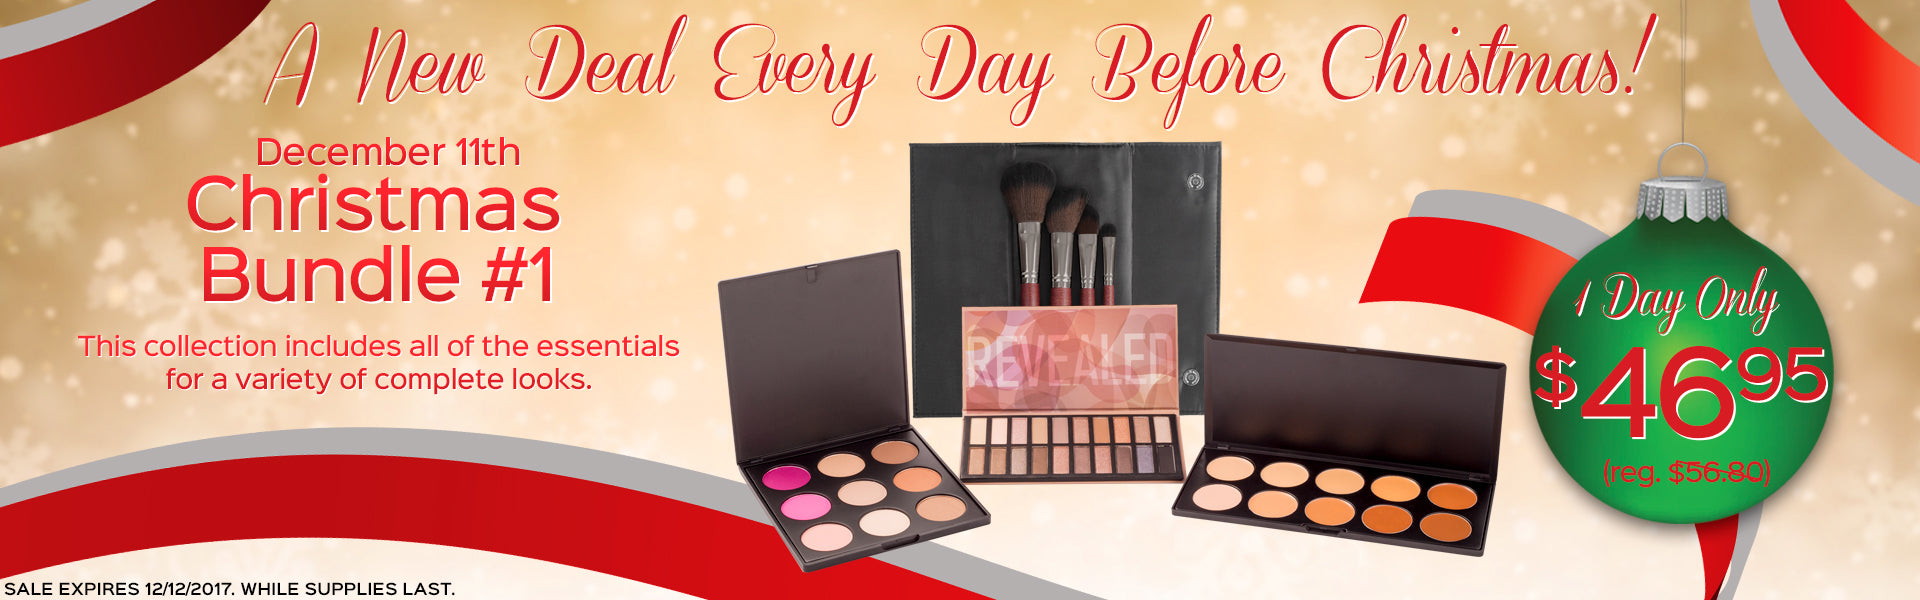 A New Deal Every Day Before Christmas Christmas Bundle #1 Now Only $46.95 - 1 Day Only!